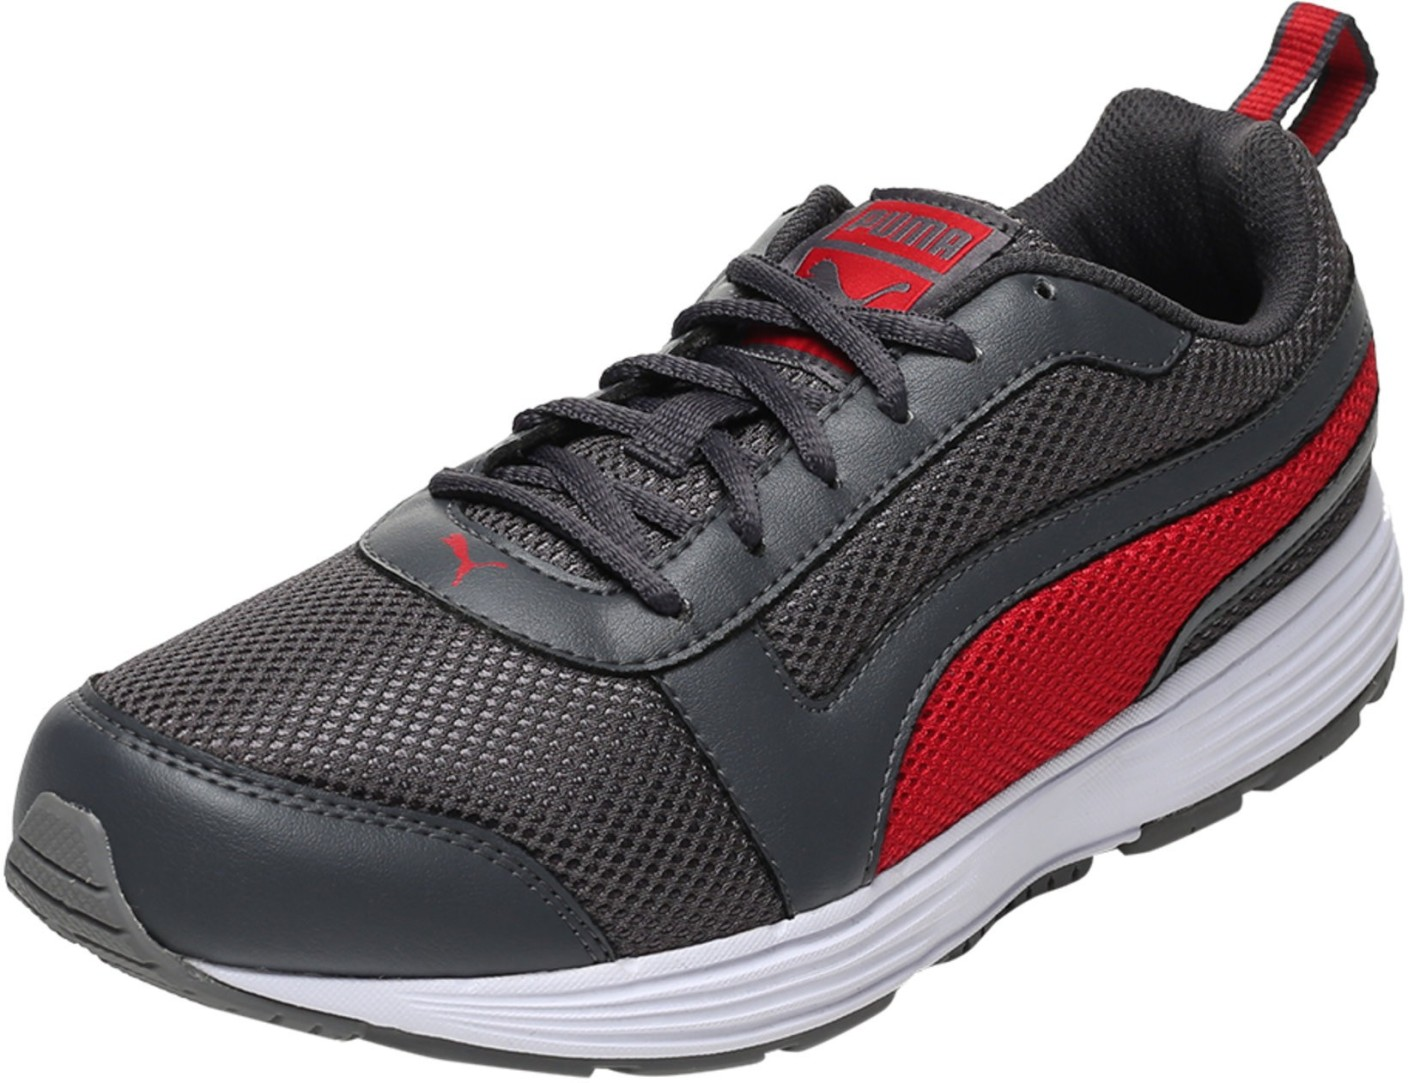 Puma IDP Running Shoes For Men